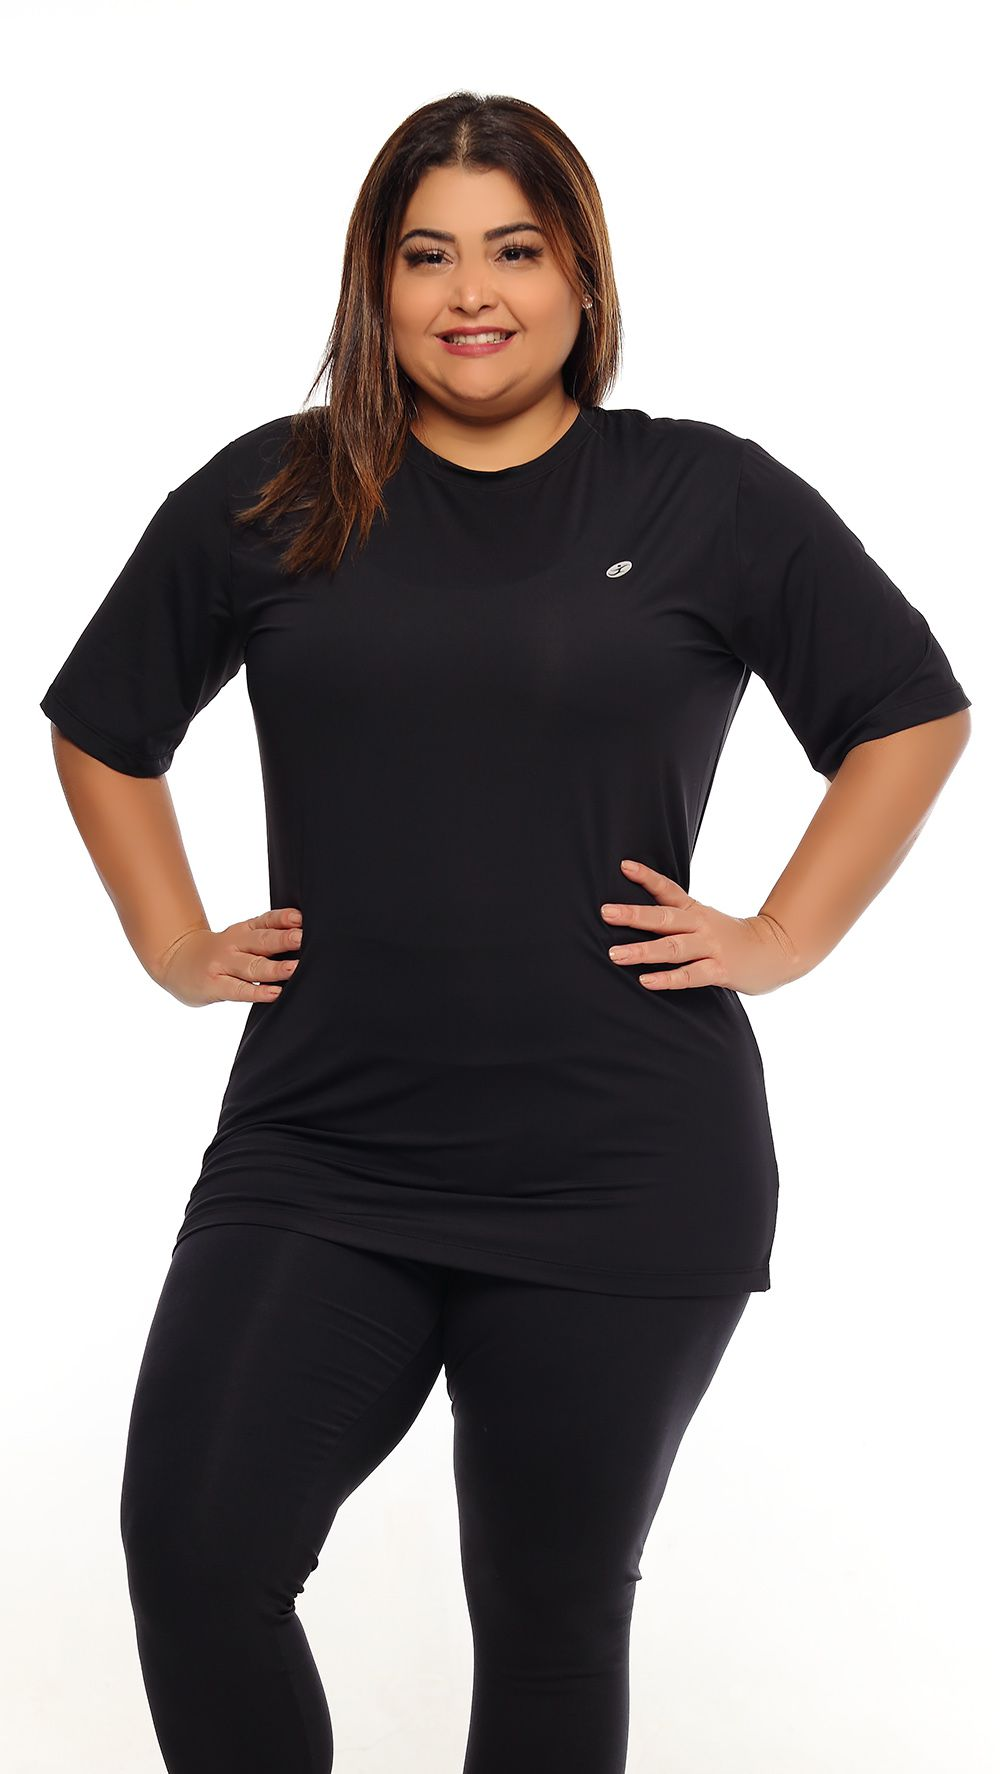 CAMISETA UNISSEX RECORTE PLUS SIZE JUST FIT - PRETO